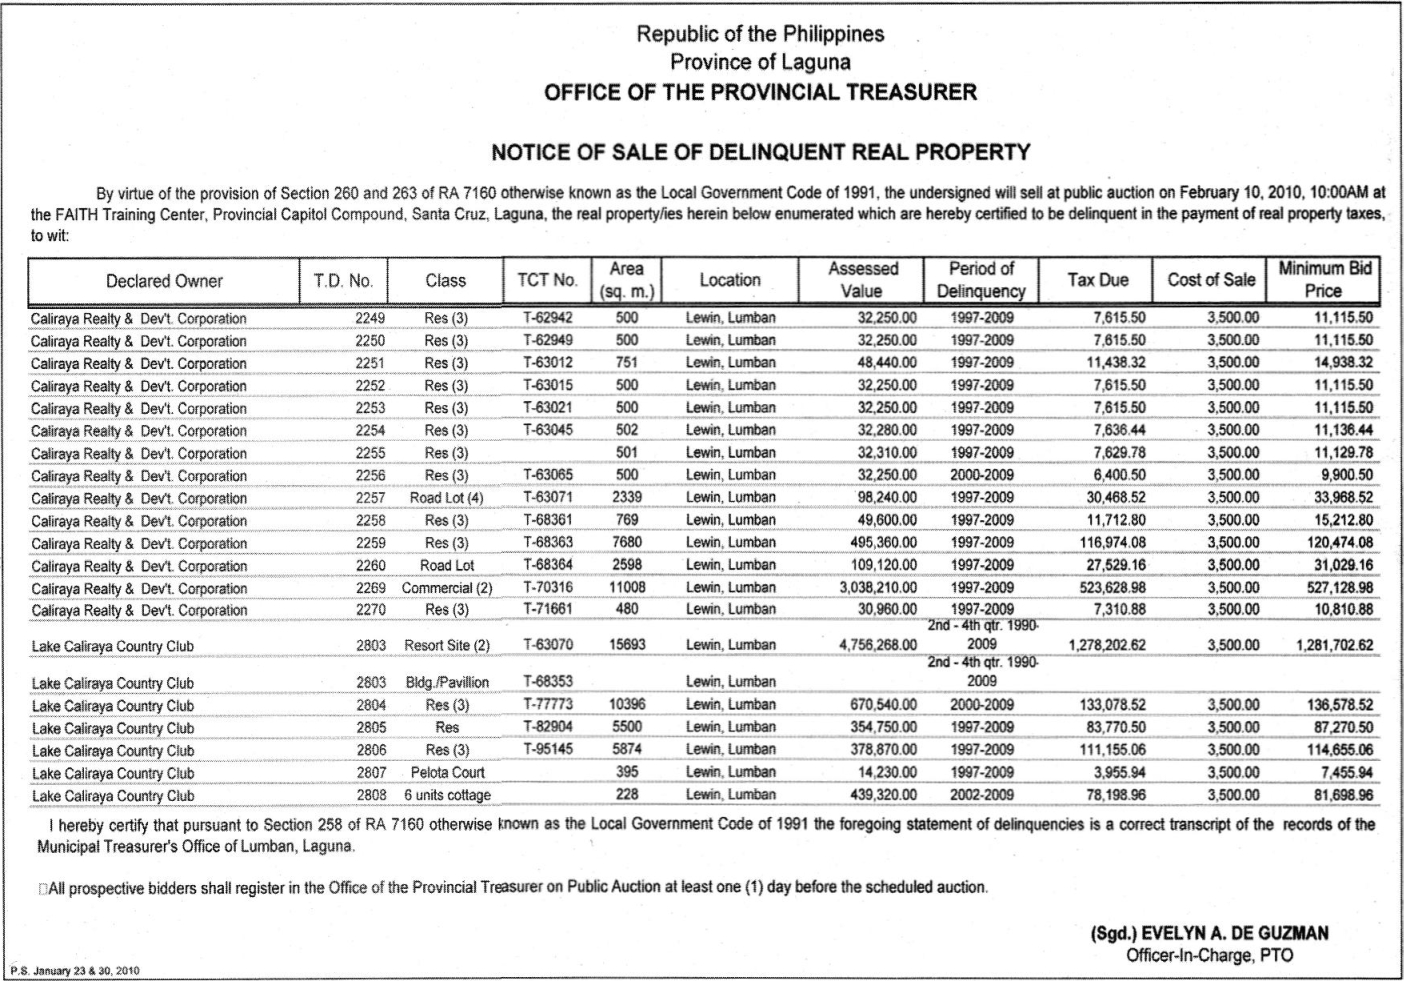 Tax foreclosure sale of delinquent real properties in Laguna slated on February 10, 2010